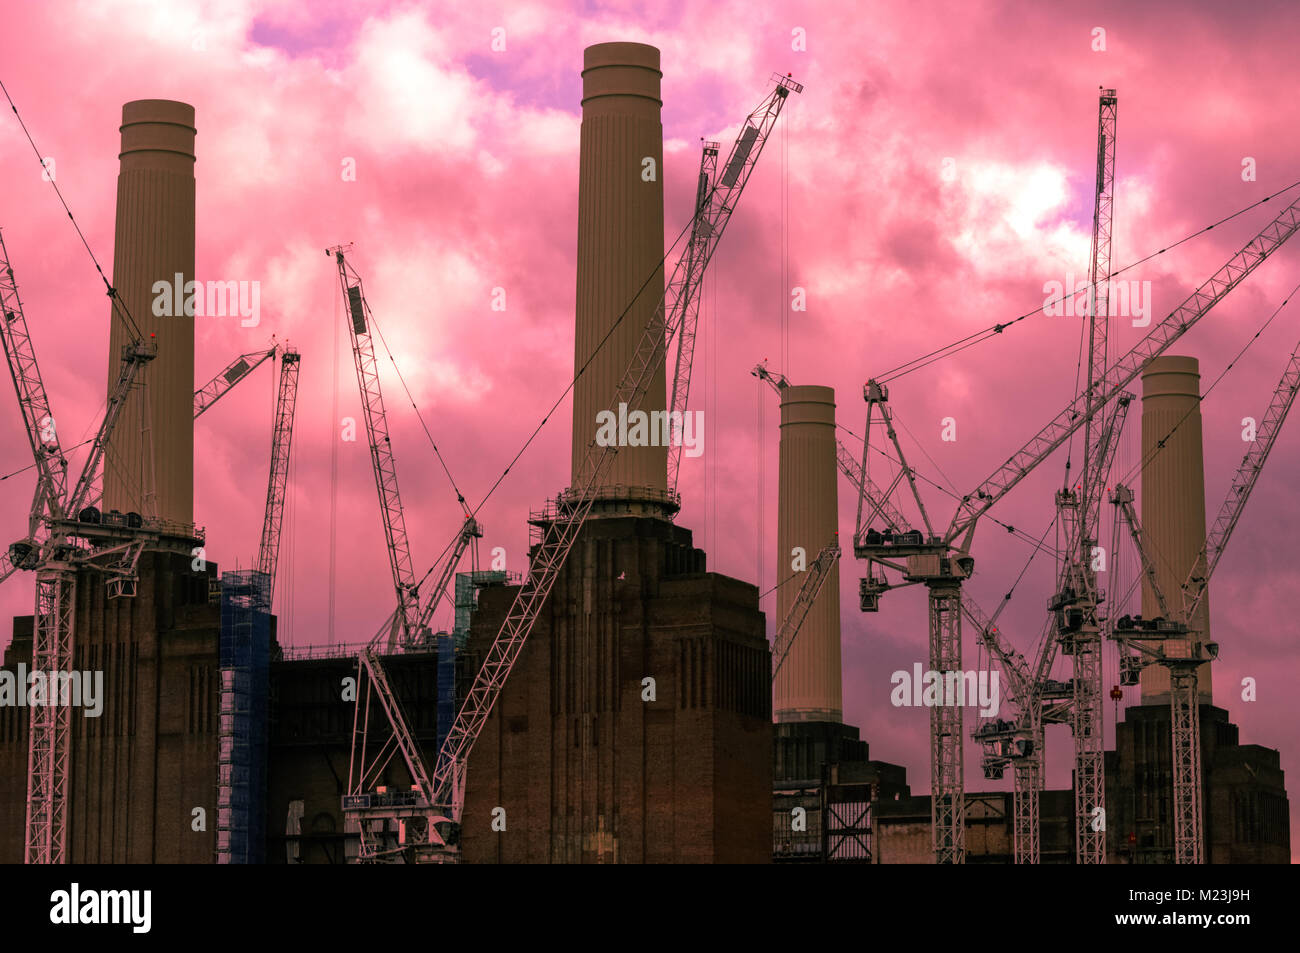 Redevelopment of Battersea Power Station in London with digitally colored sky - Stock Image